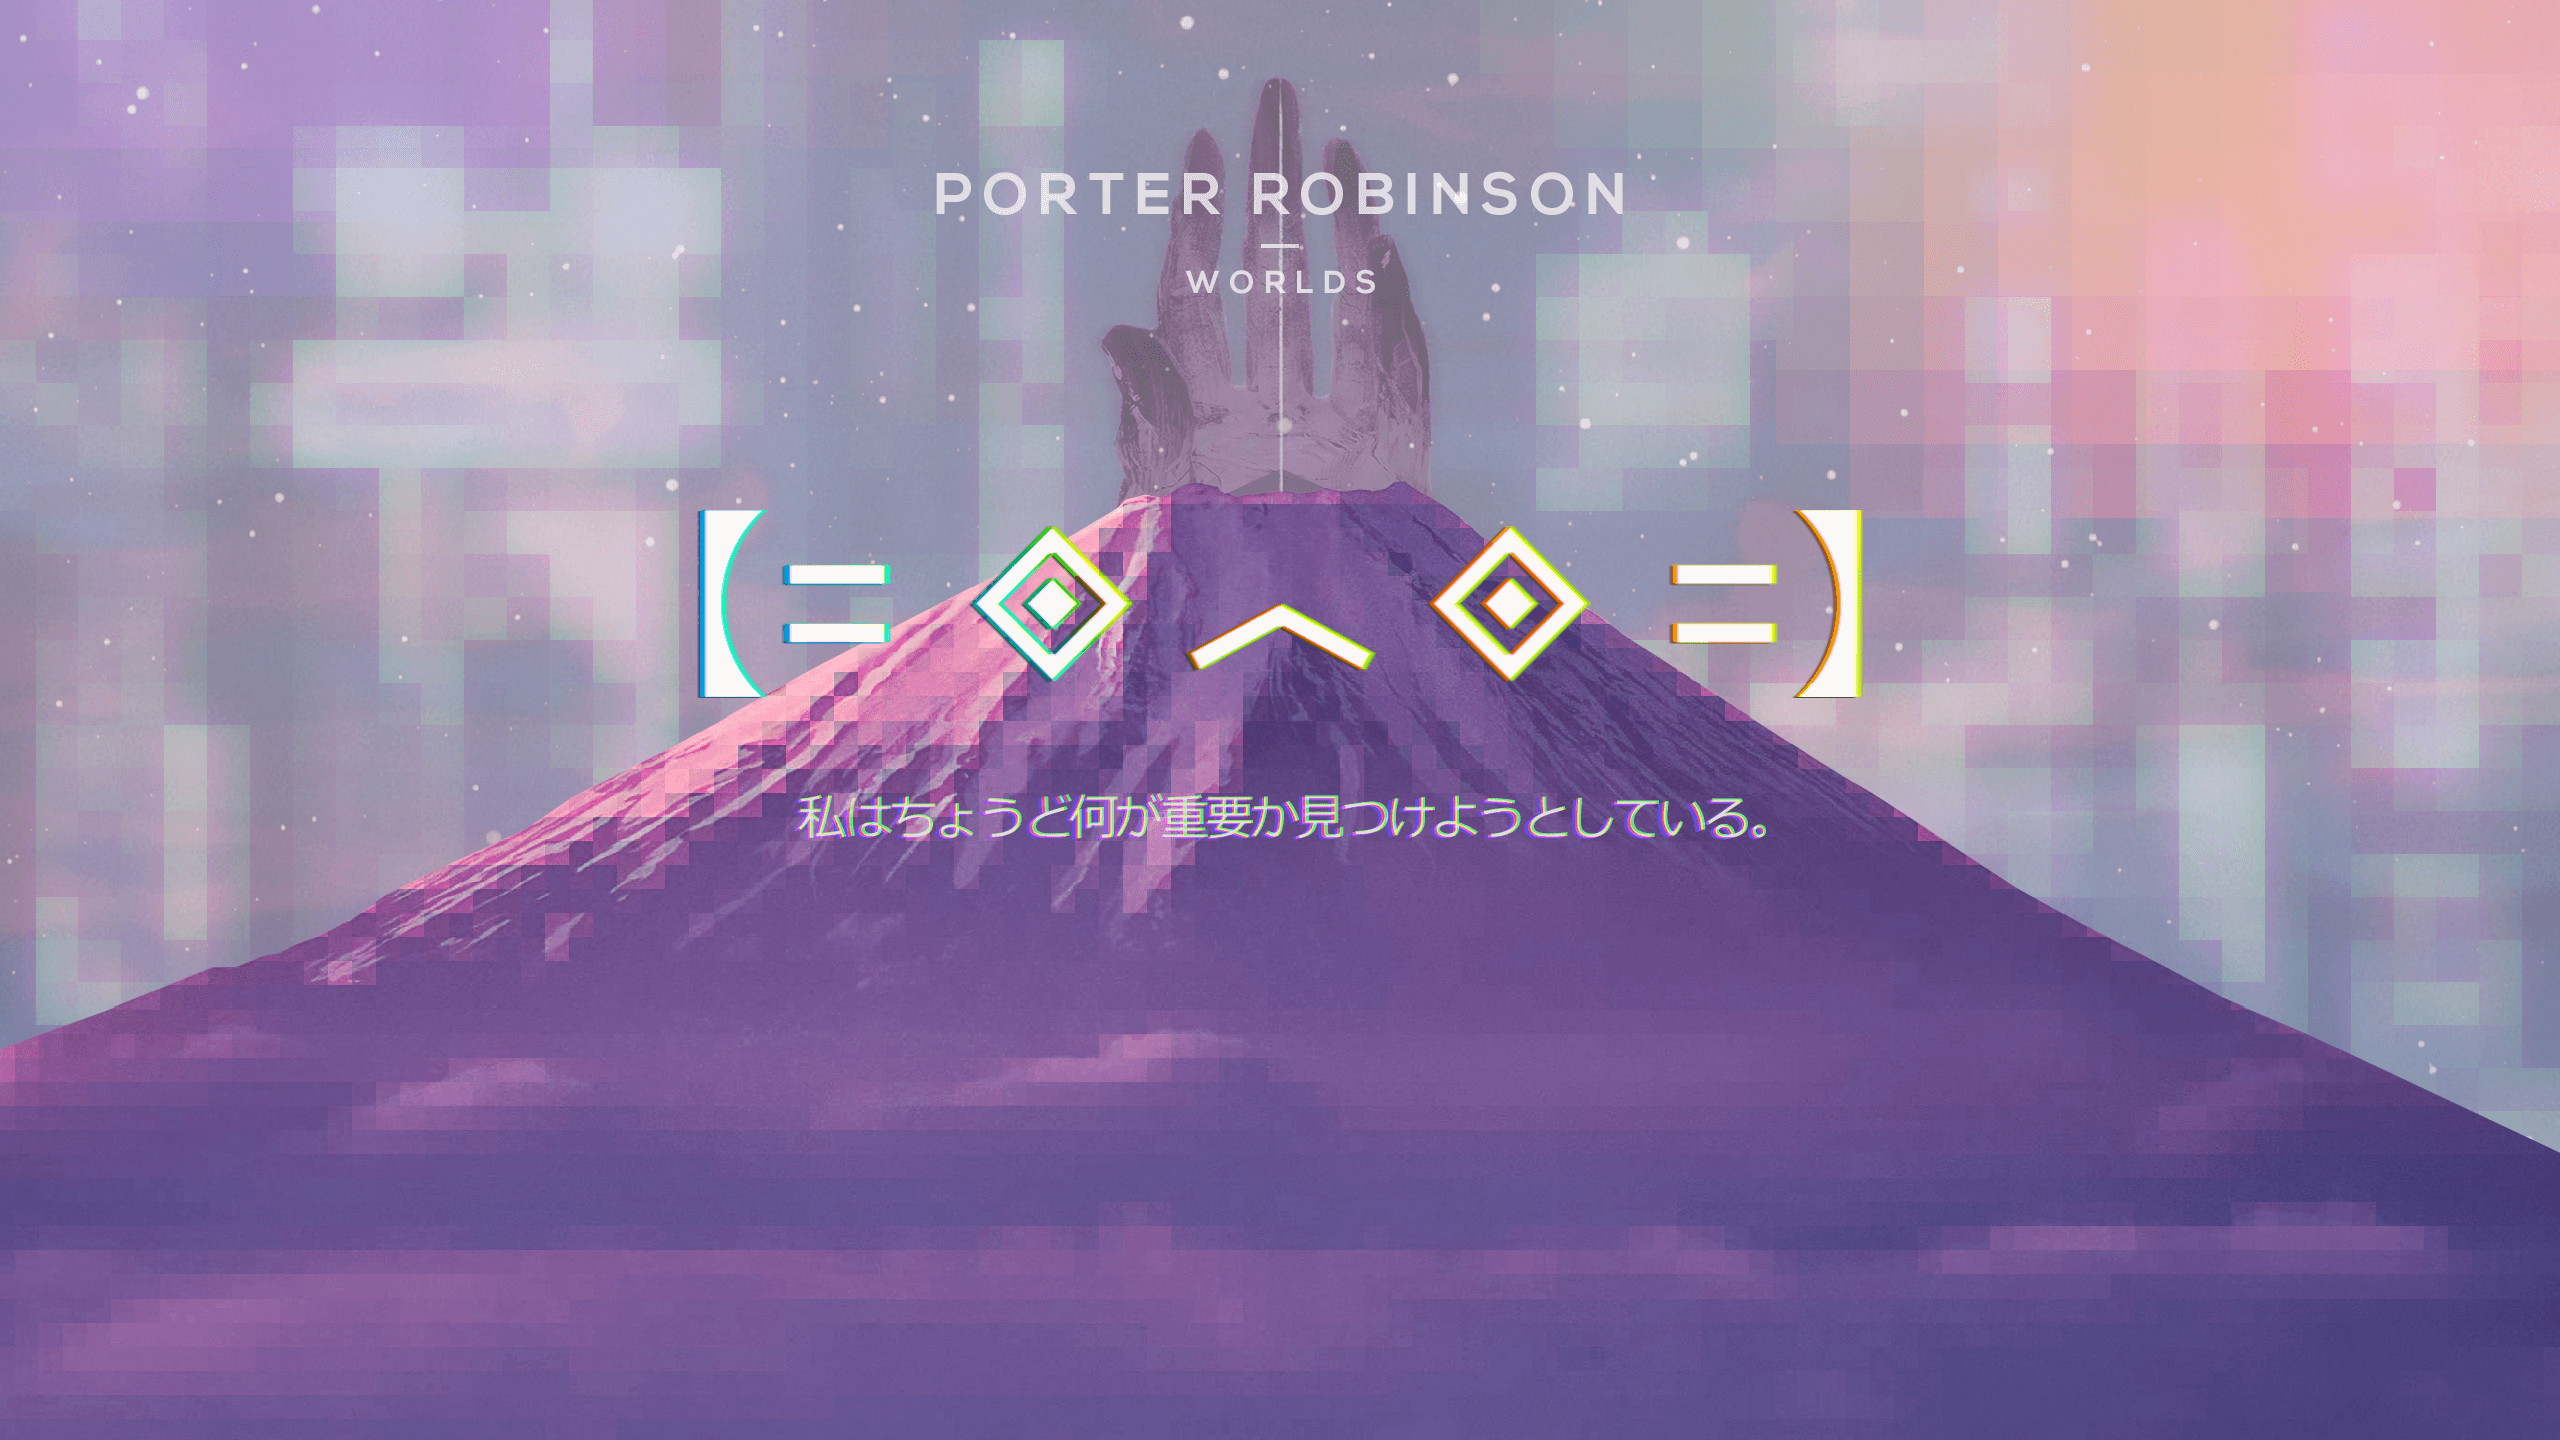 Porter Robinson Cover Wallpaper Background HD 64702 2560x1440px 2560x1440